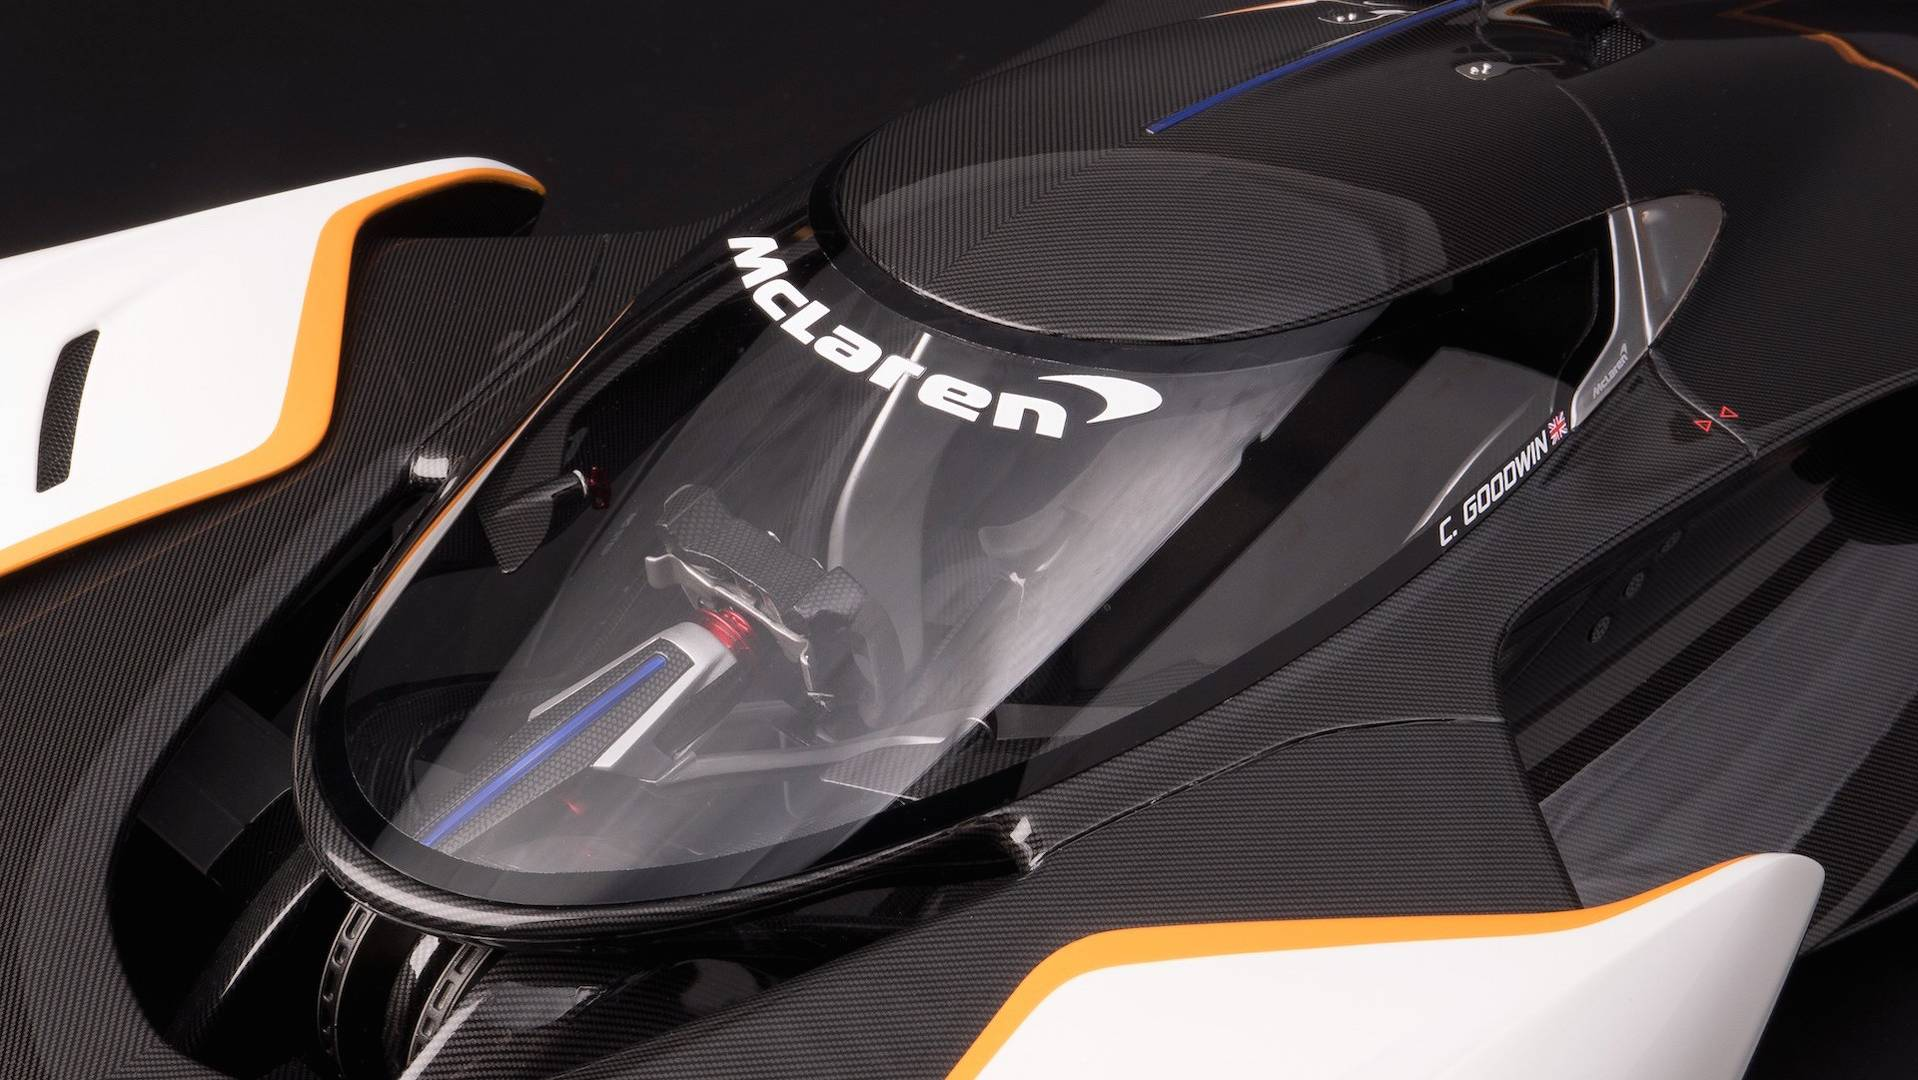 mclaren-ultimate-vision-gt-scale-model (17)